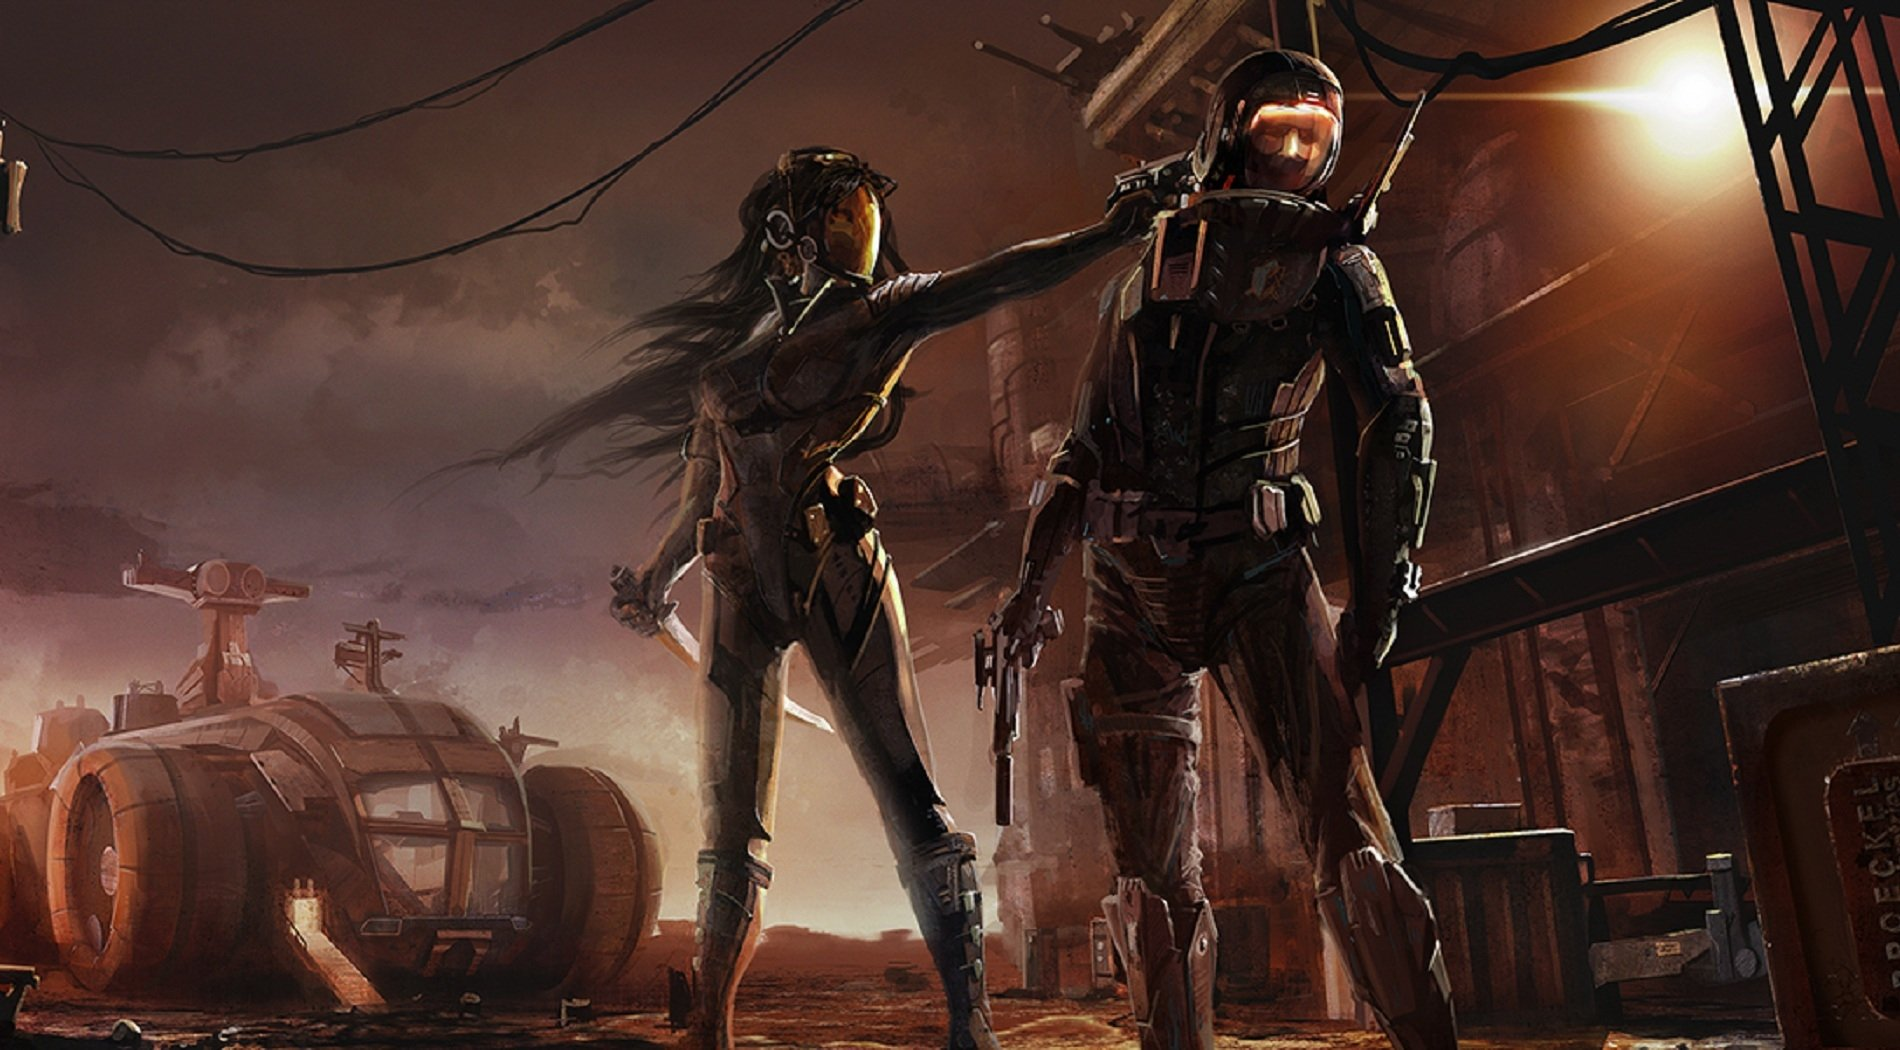 36 Bounty Hunter Hd Wallpapers Background Images Wallpaper Abyss